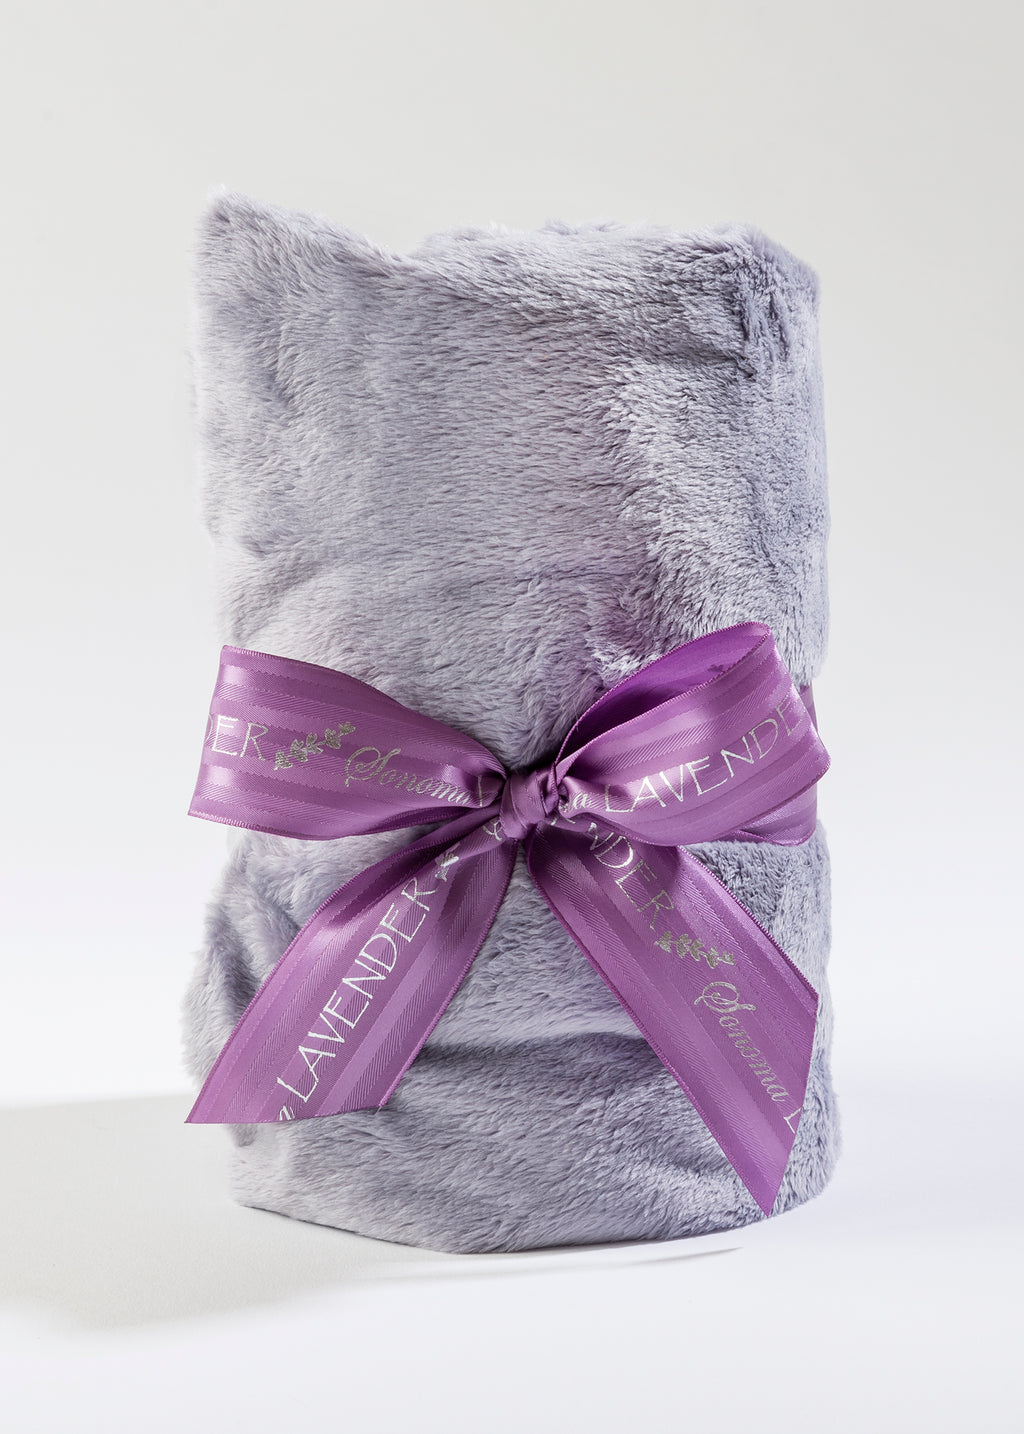 Lavender Spa Heat Wrap in Plush Plata Silver